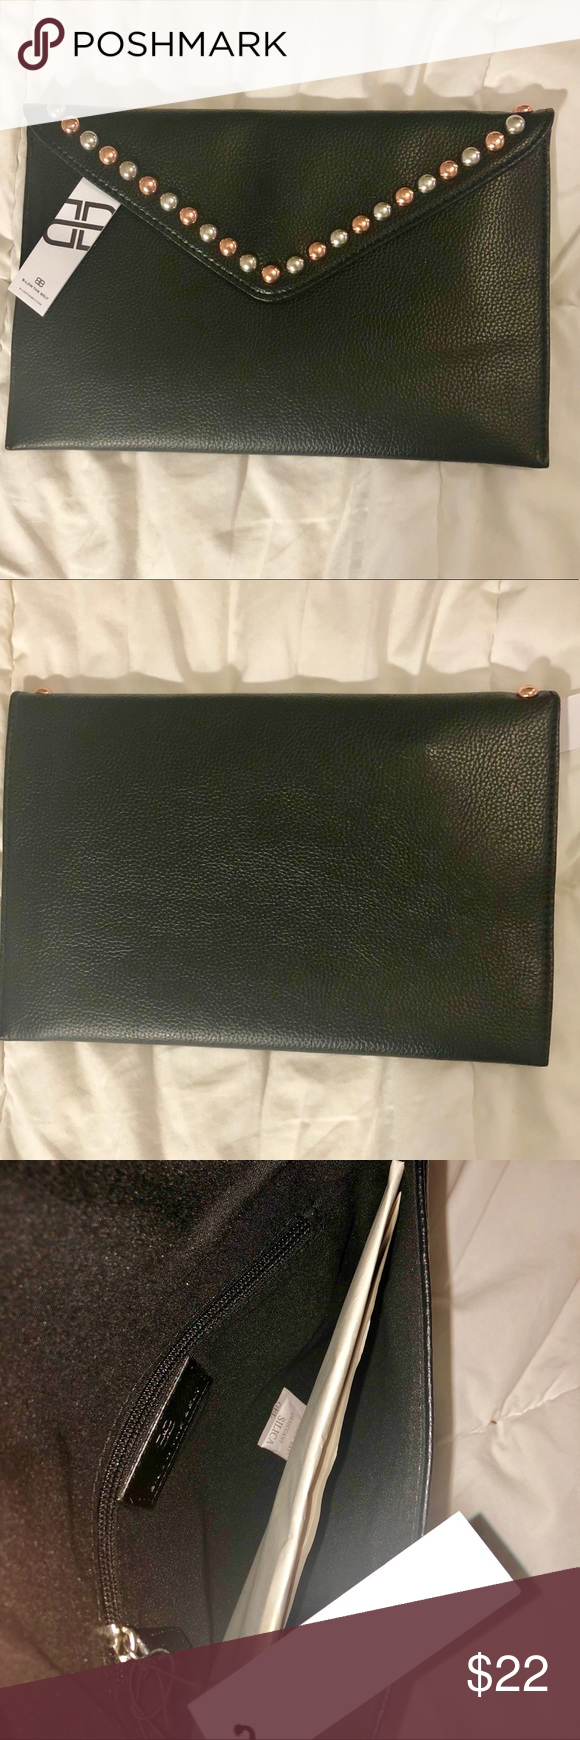 Nwt Below The Belt Clutch From Fabfitfun Subscription Box Never Used Bags